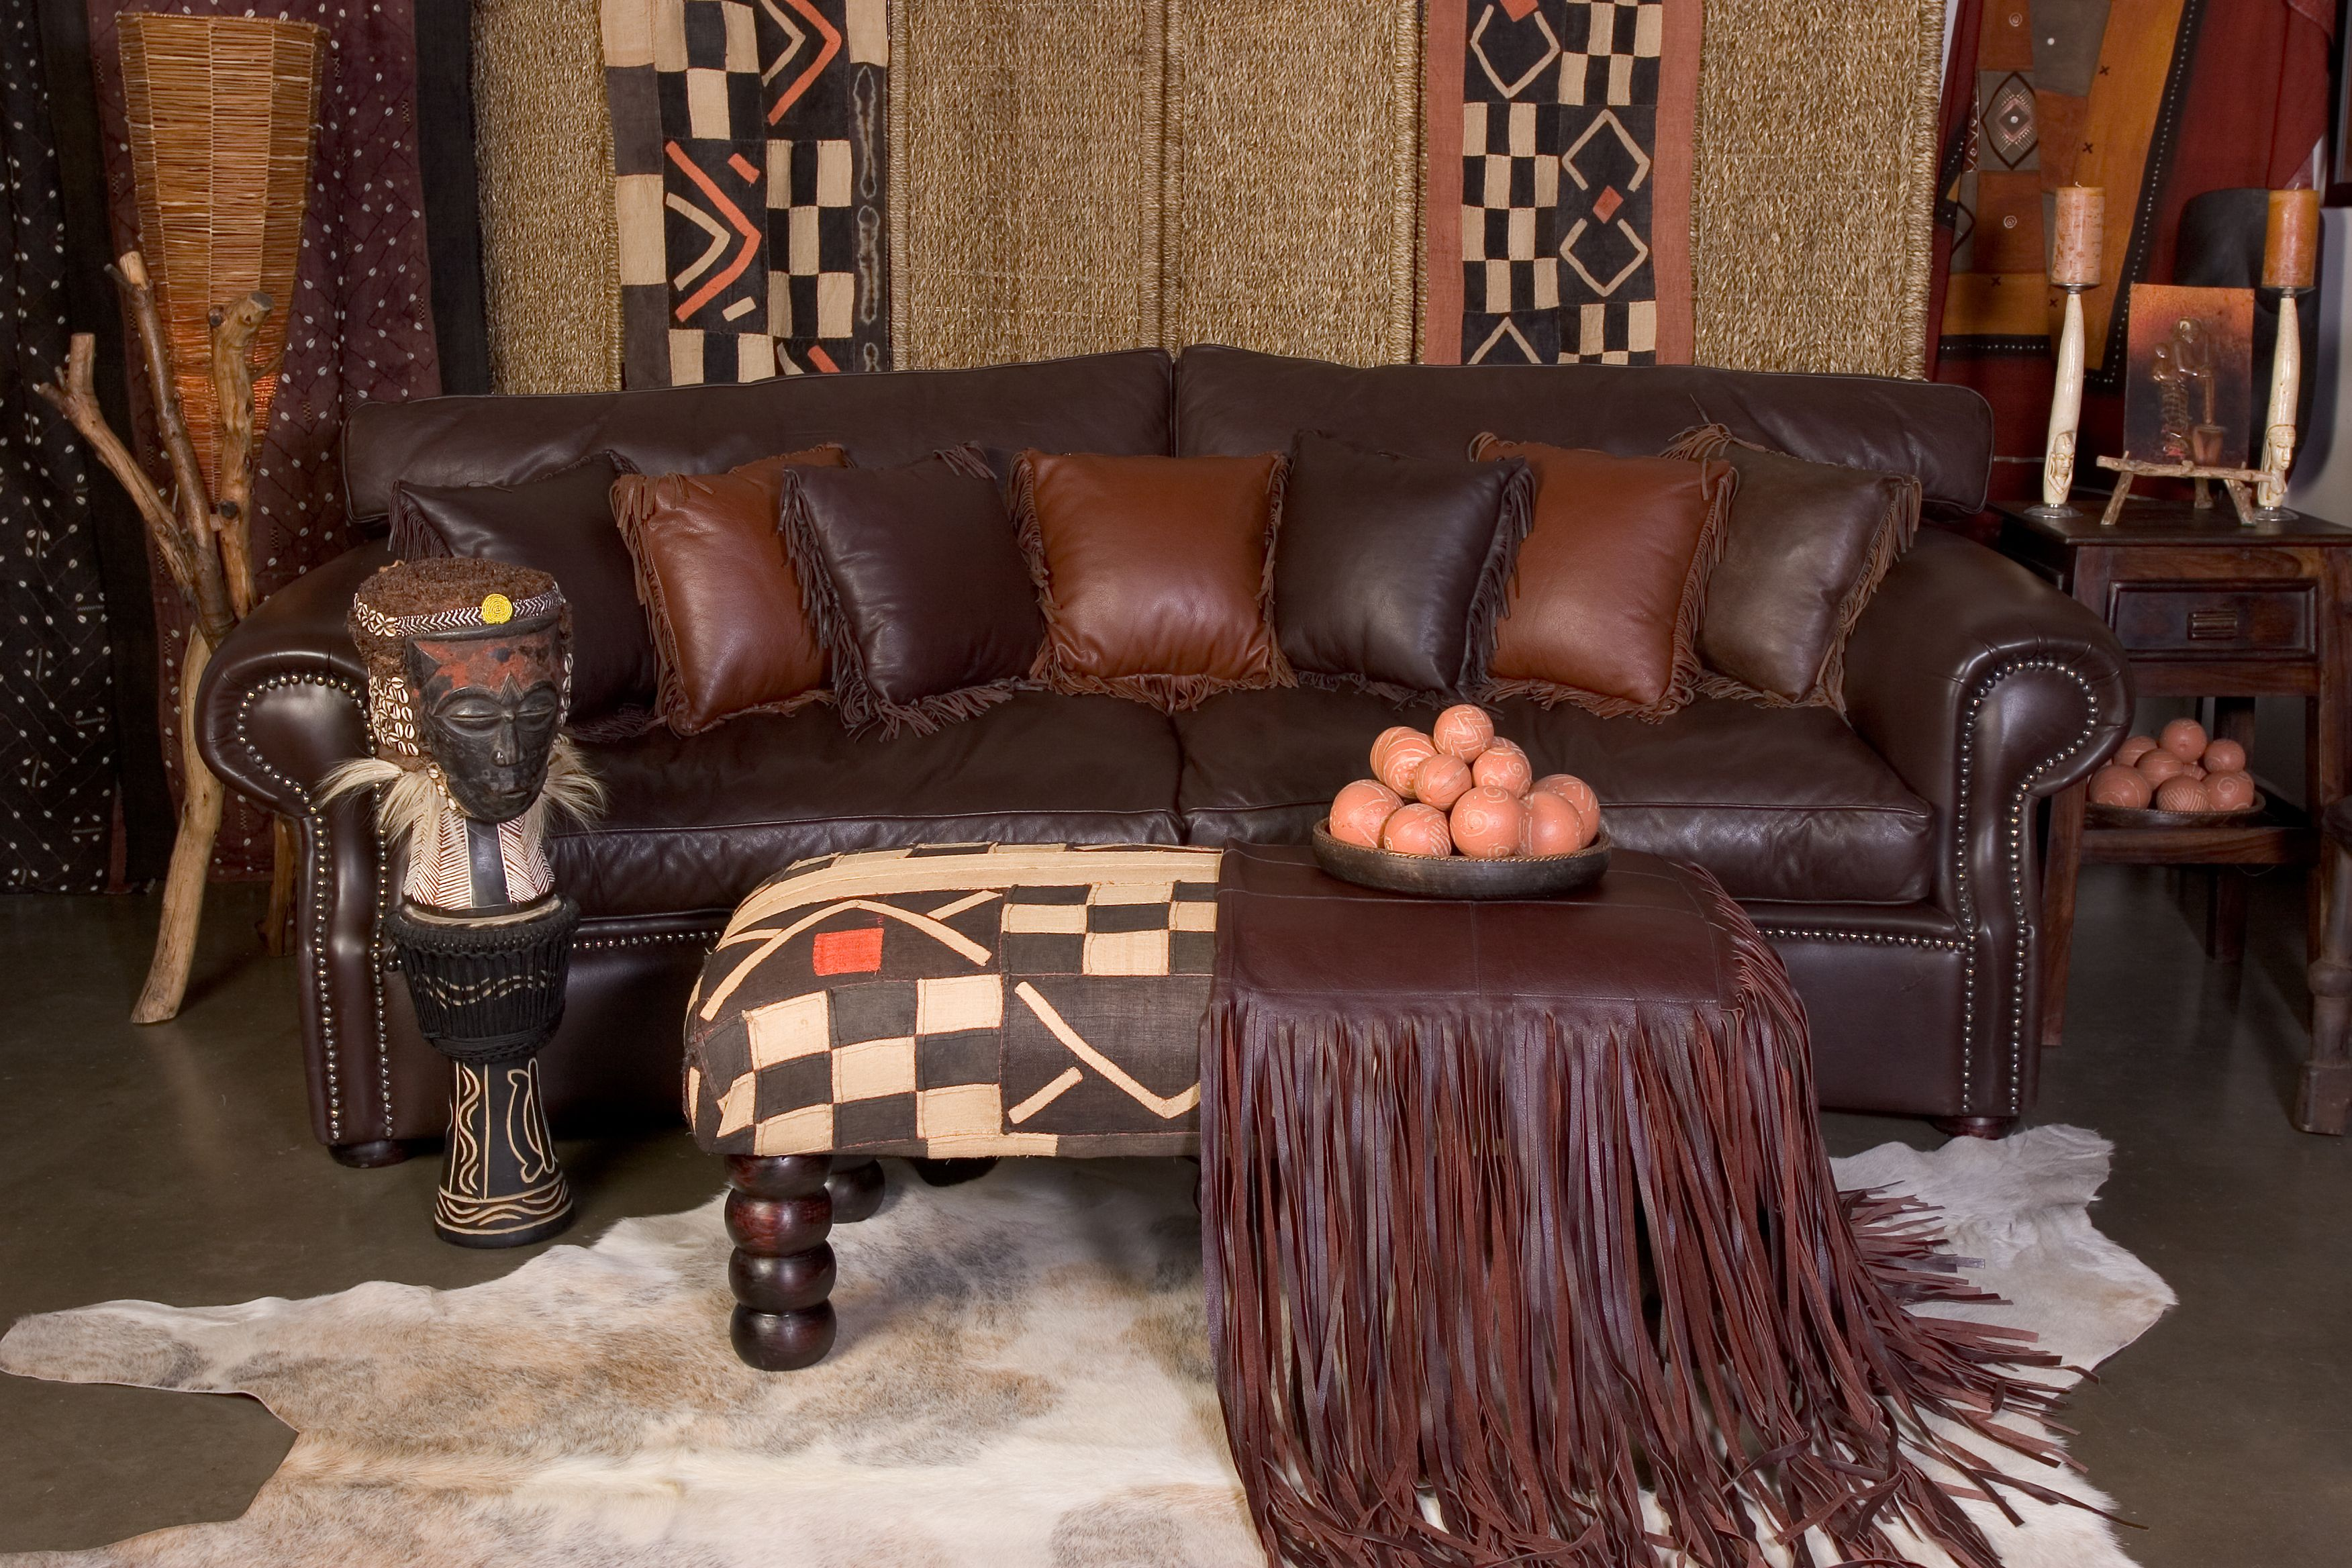 Leather Wingback Chairs South Africa Hardwood Floor Chair Leg Protectors Kudu Sofa Pillows Nguni Skin